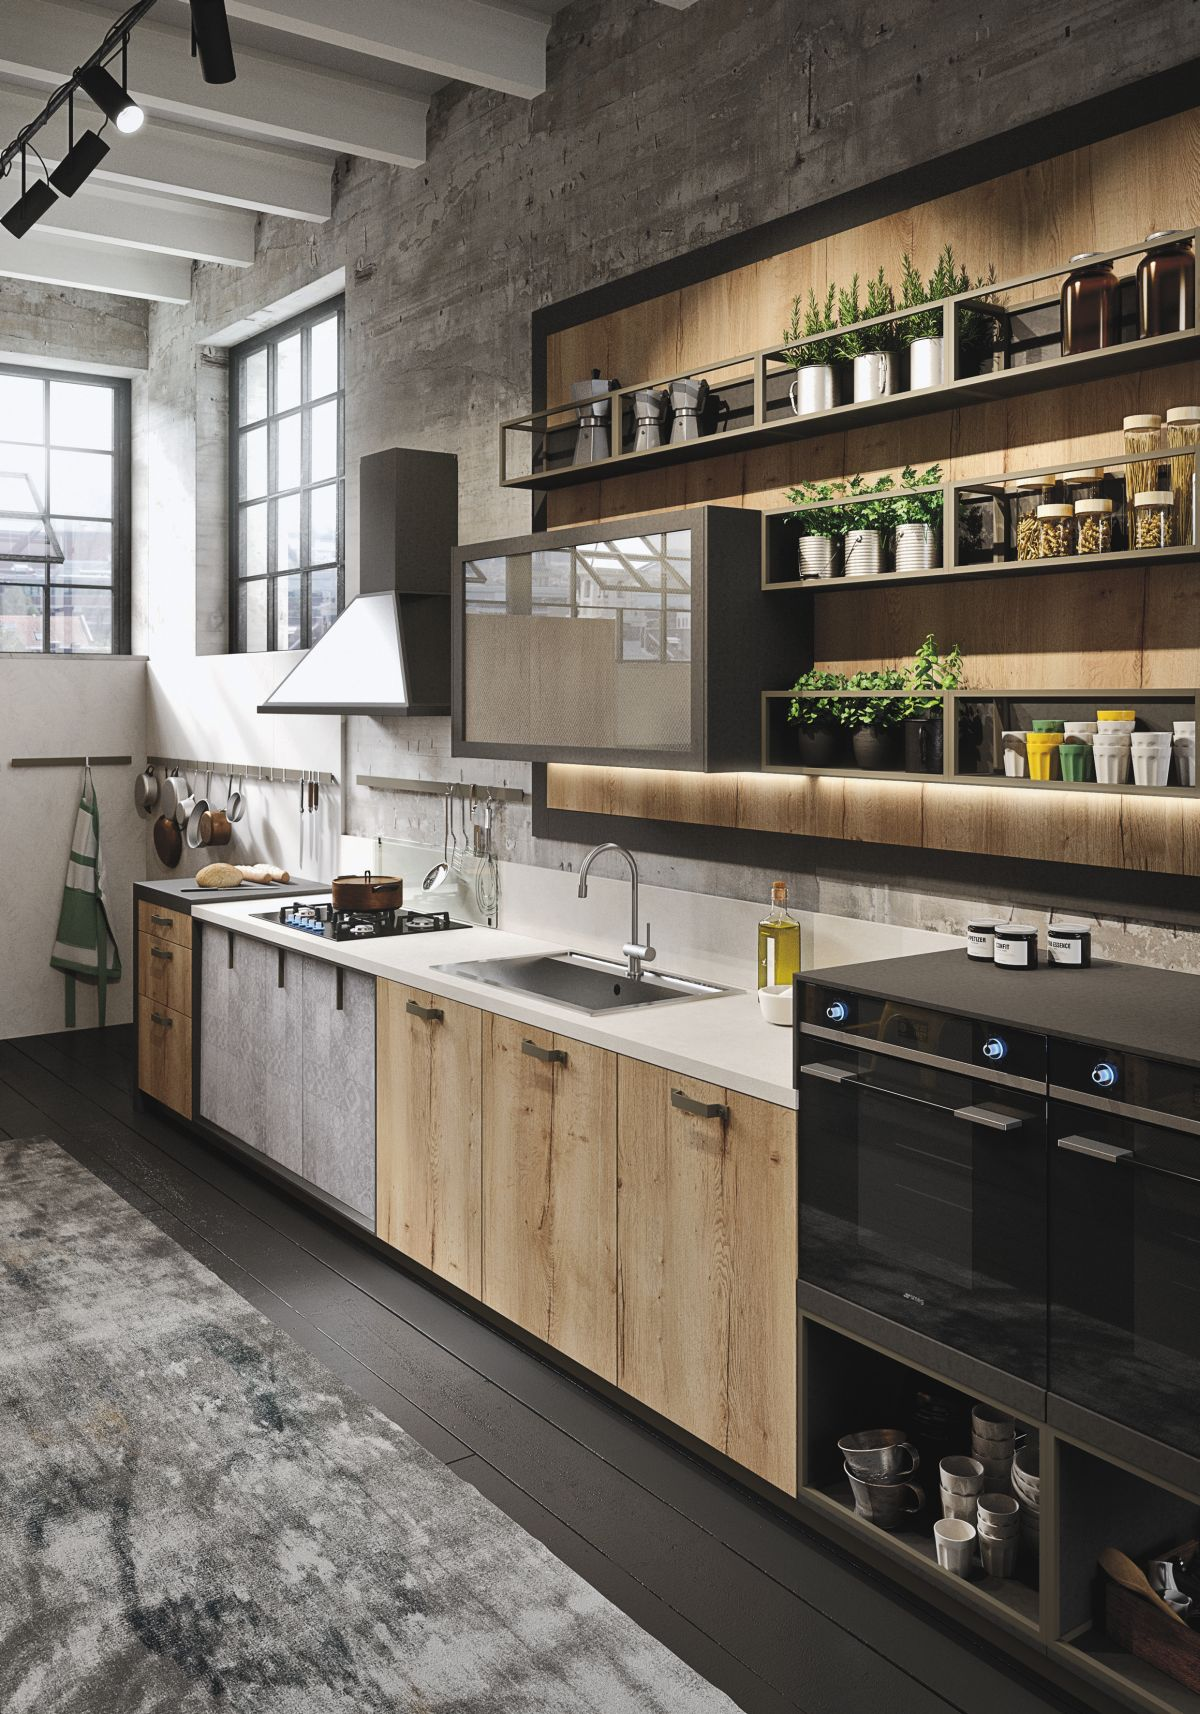 Industiral and rustic loft kitchen by snaidero digsdigs for Kitchen interior design styles